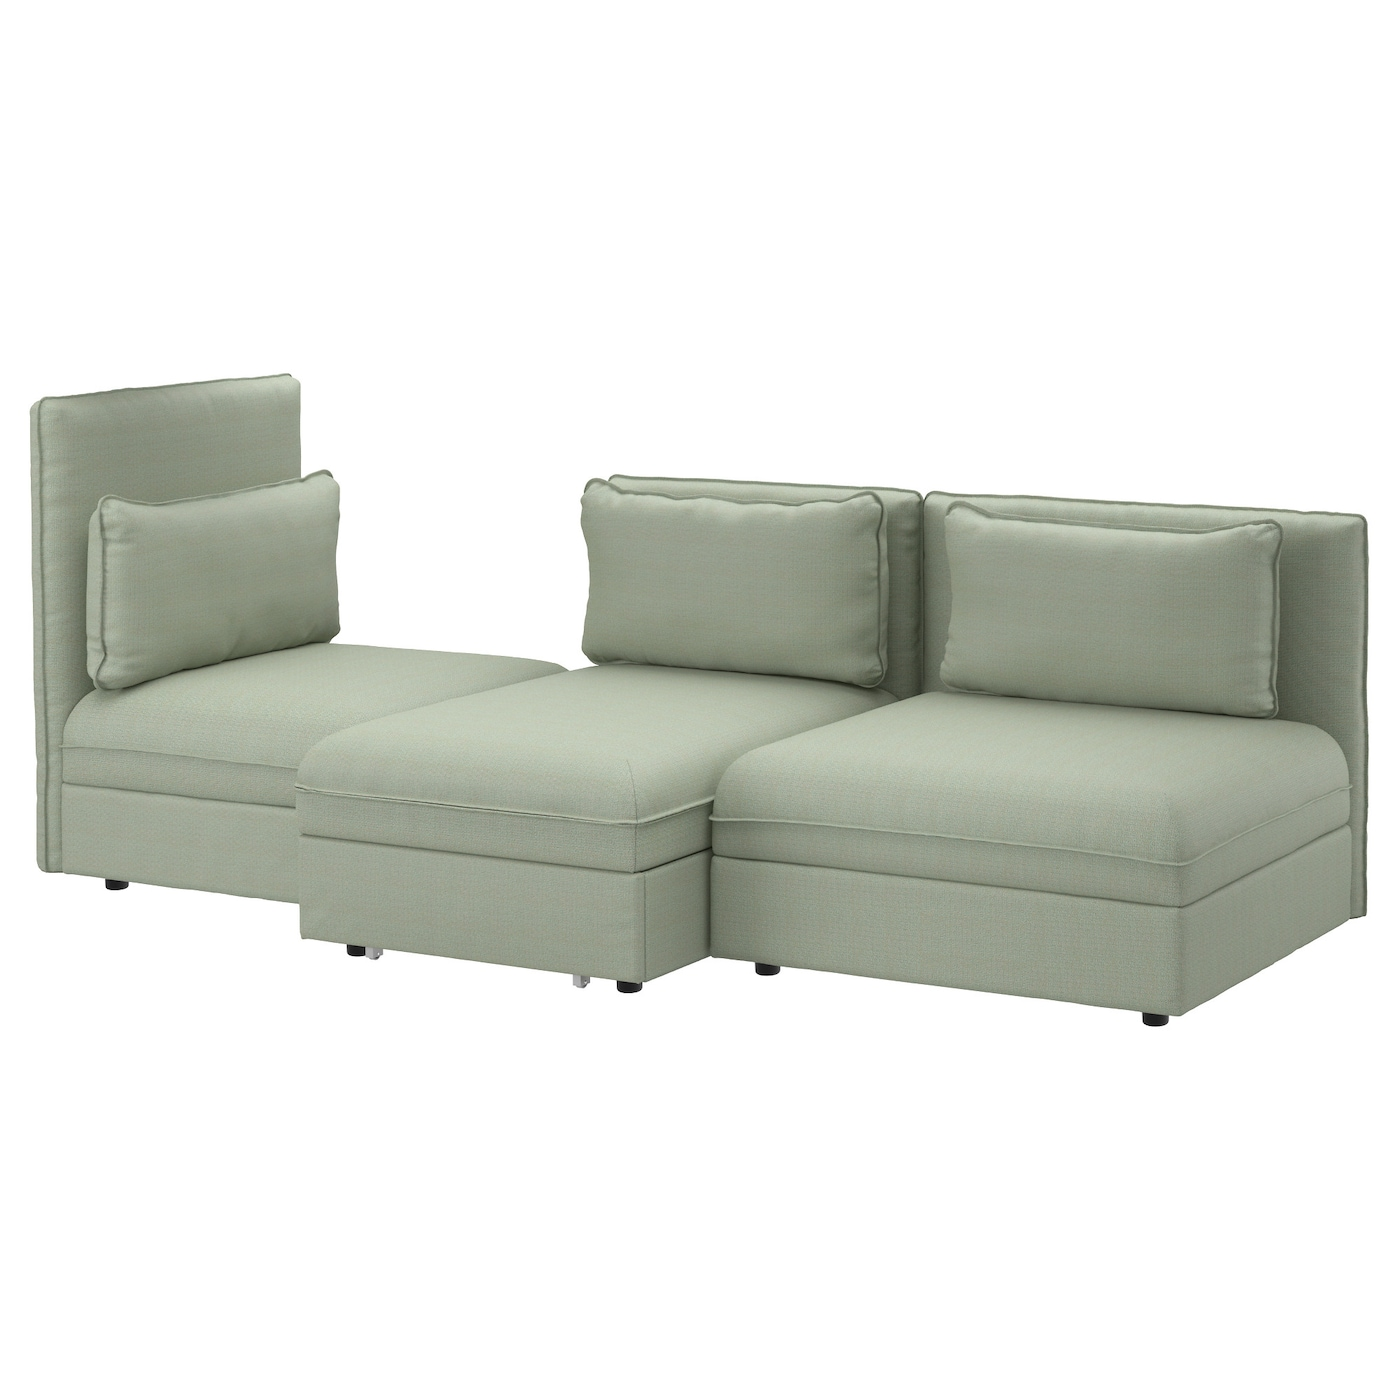 Vallentuna 3 seat sofa with bed hillared green ikea for Sofas rinconeras ikea